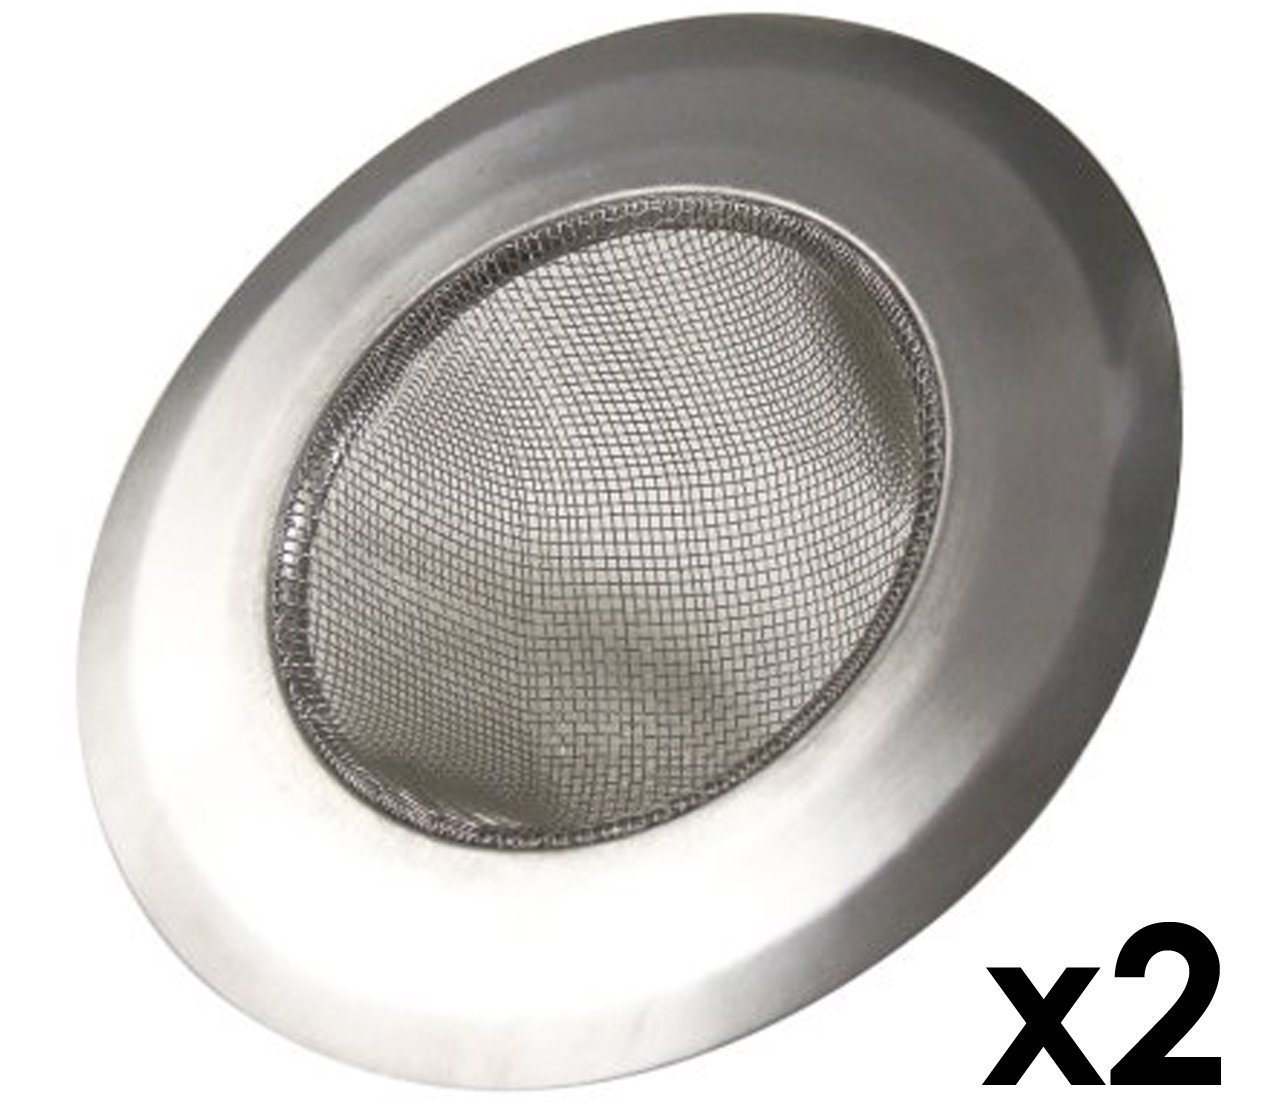 Amazon.com: Thunder Group Stainless-steel Sink & Tub Strainer Wide ...